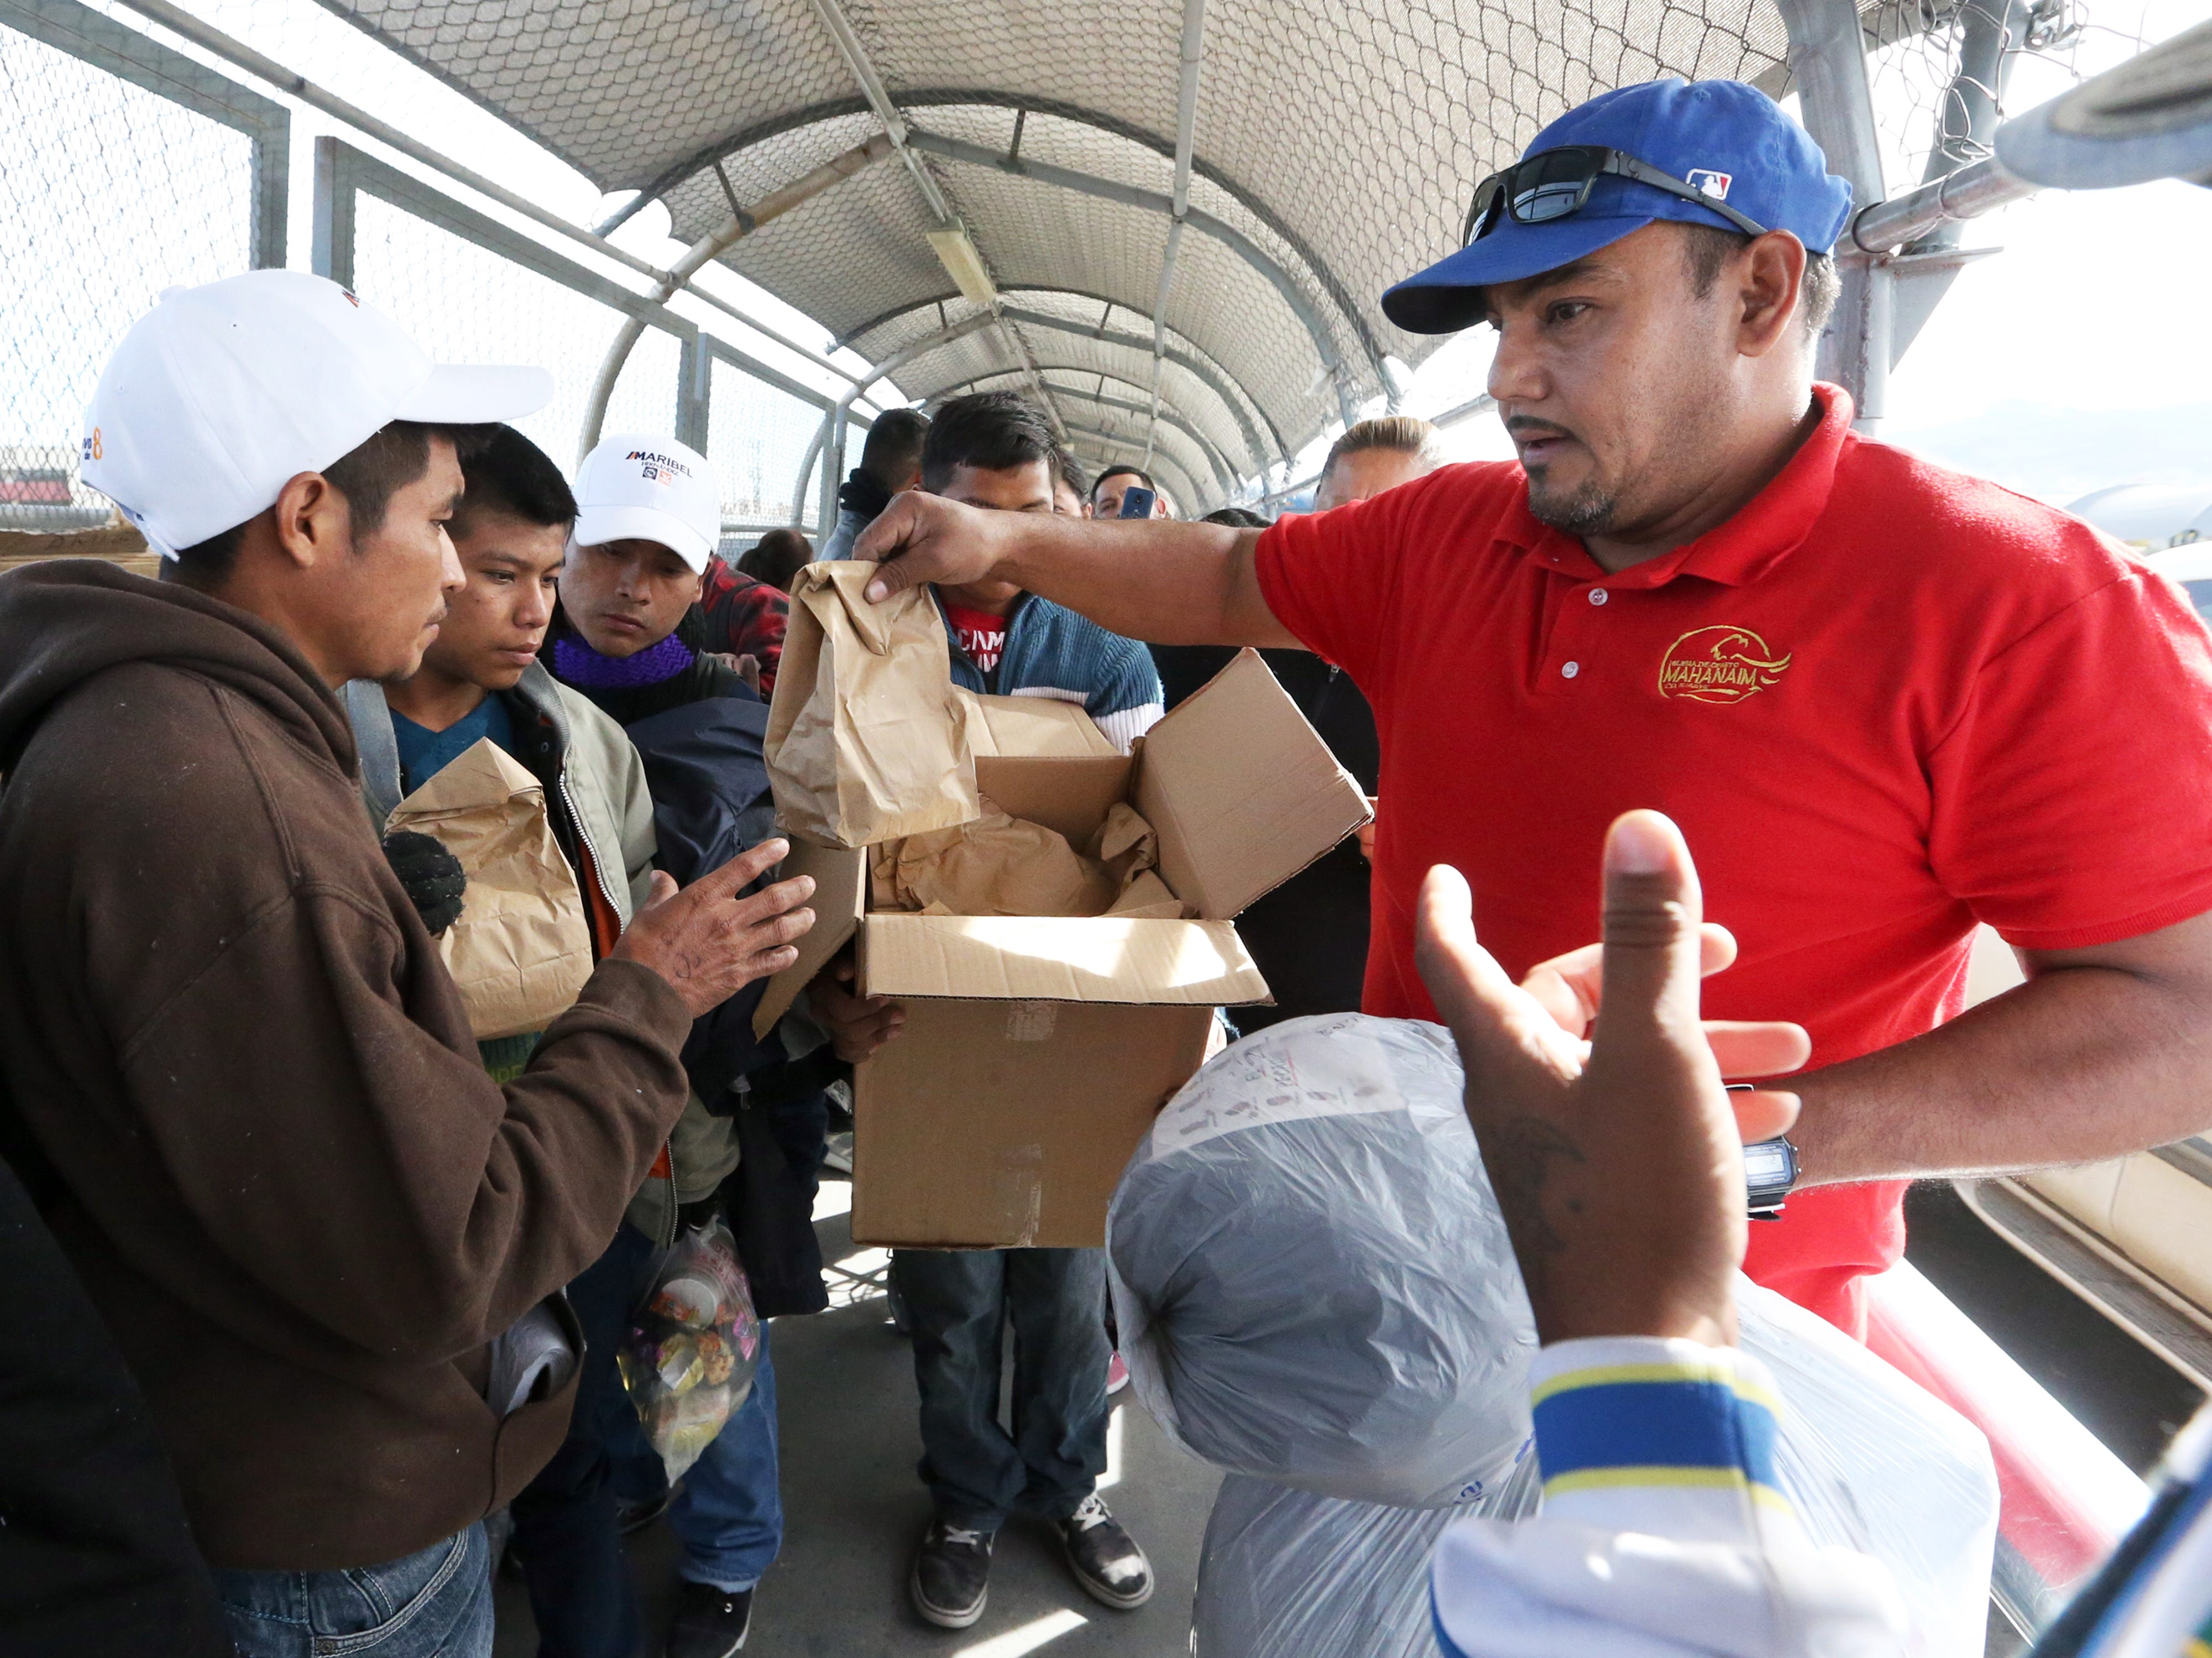 Hugo Enrique Lujan, right, of Mahanaim Christian church in Juarez hands out sack lunches to migrants waiting to enter the U.S. atop the Paso Del Norte international bridge Thursday, Nov. 1. Just over 100 immigrants from various countries, including Mexico, Central America and Cuba were camped out at the bridge. U.S. immigration officials were allowing small groups at a time to enter.